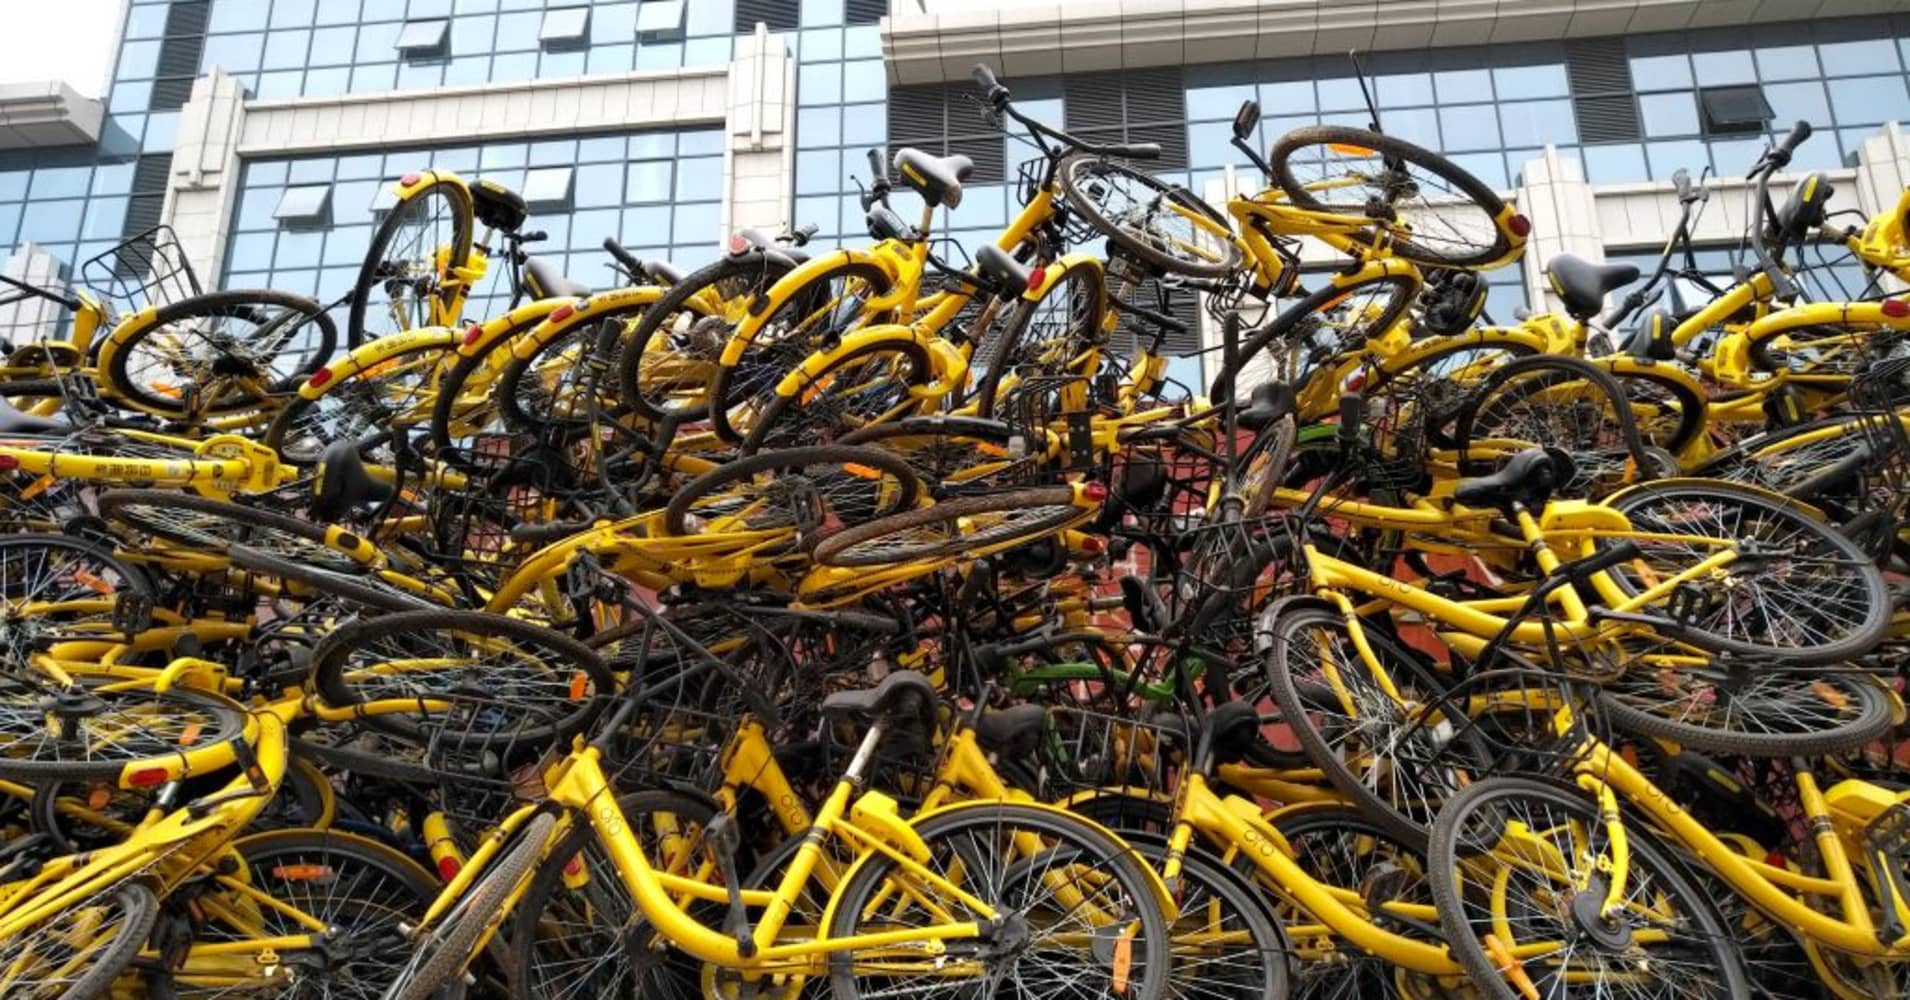 Shared bikes that have been piled up along a street in Wangjing District in Beijing, China.